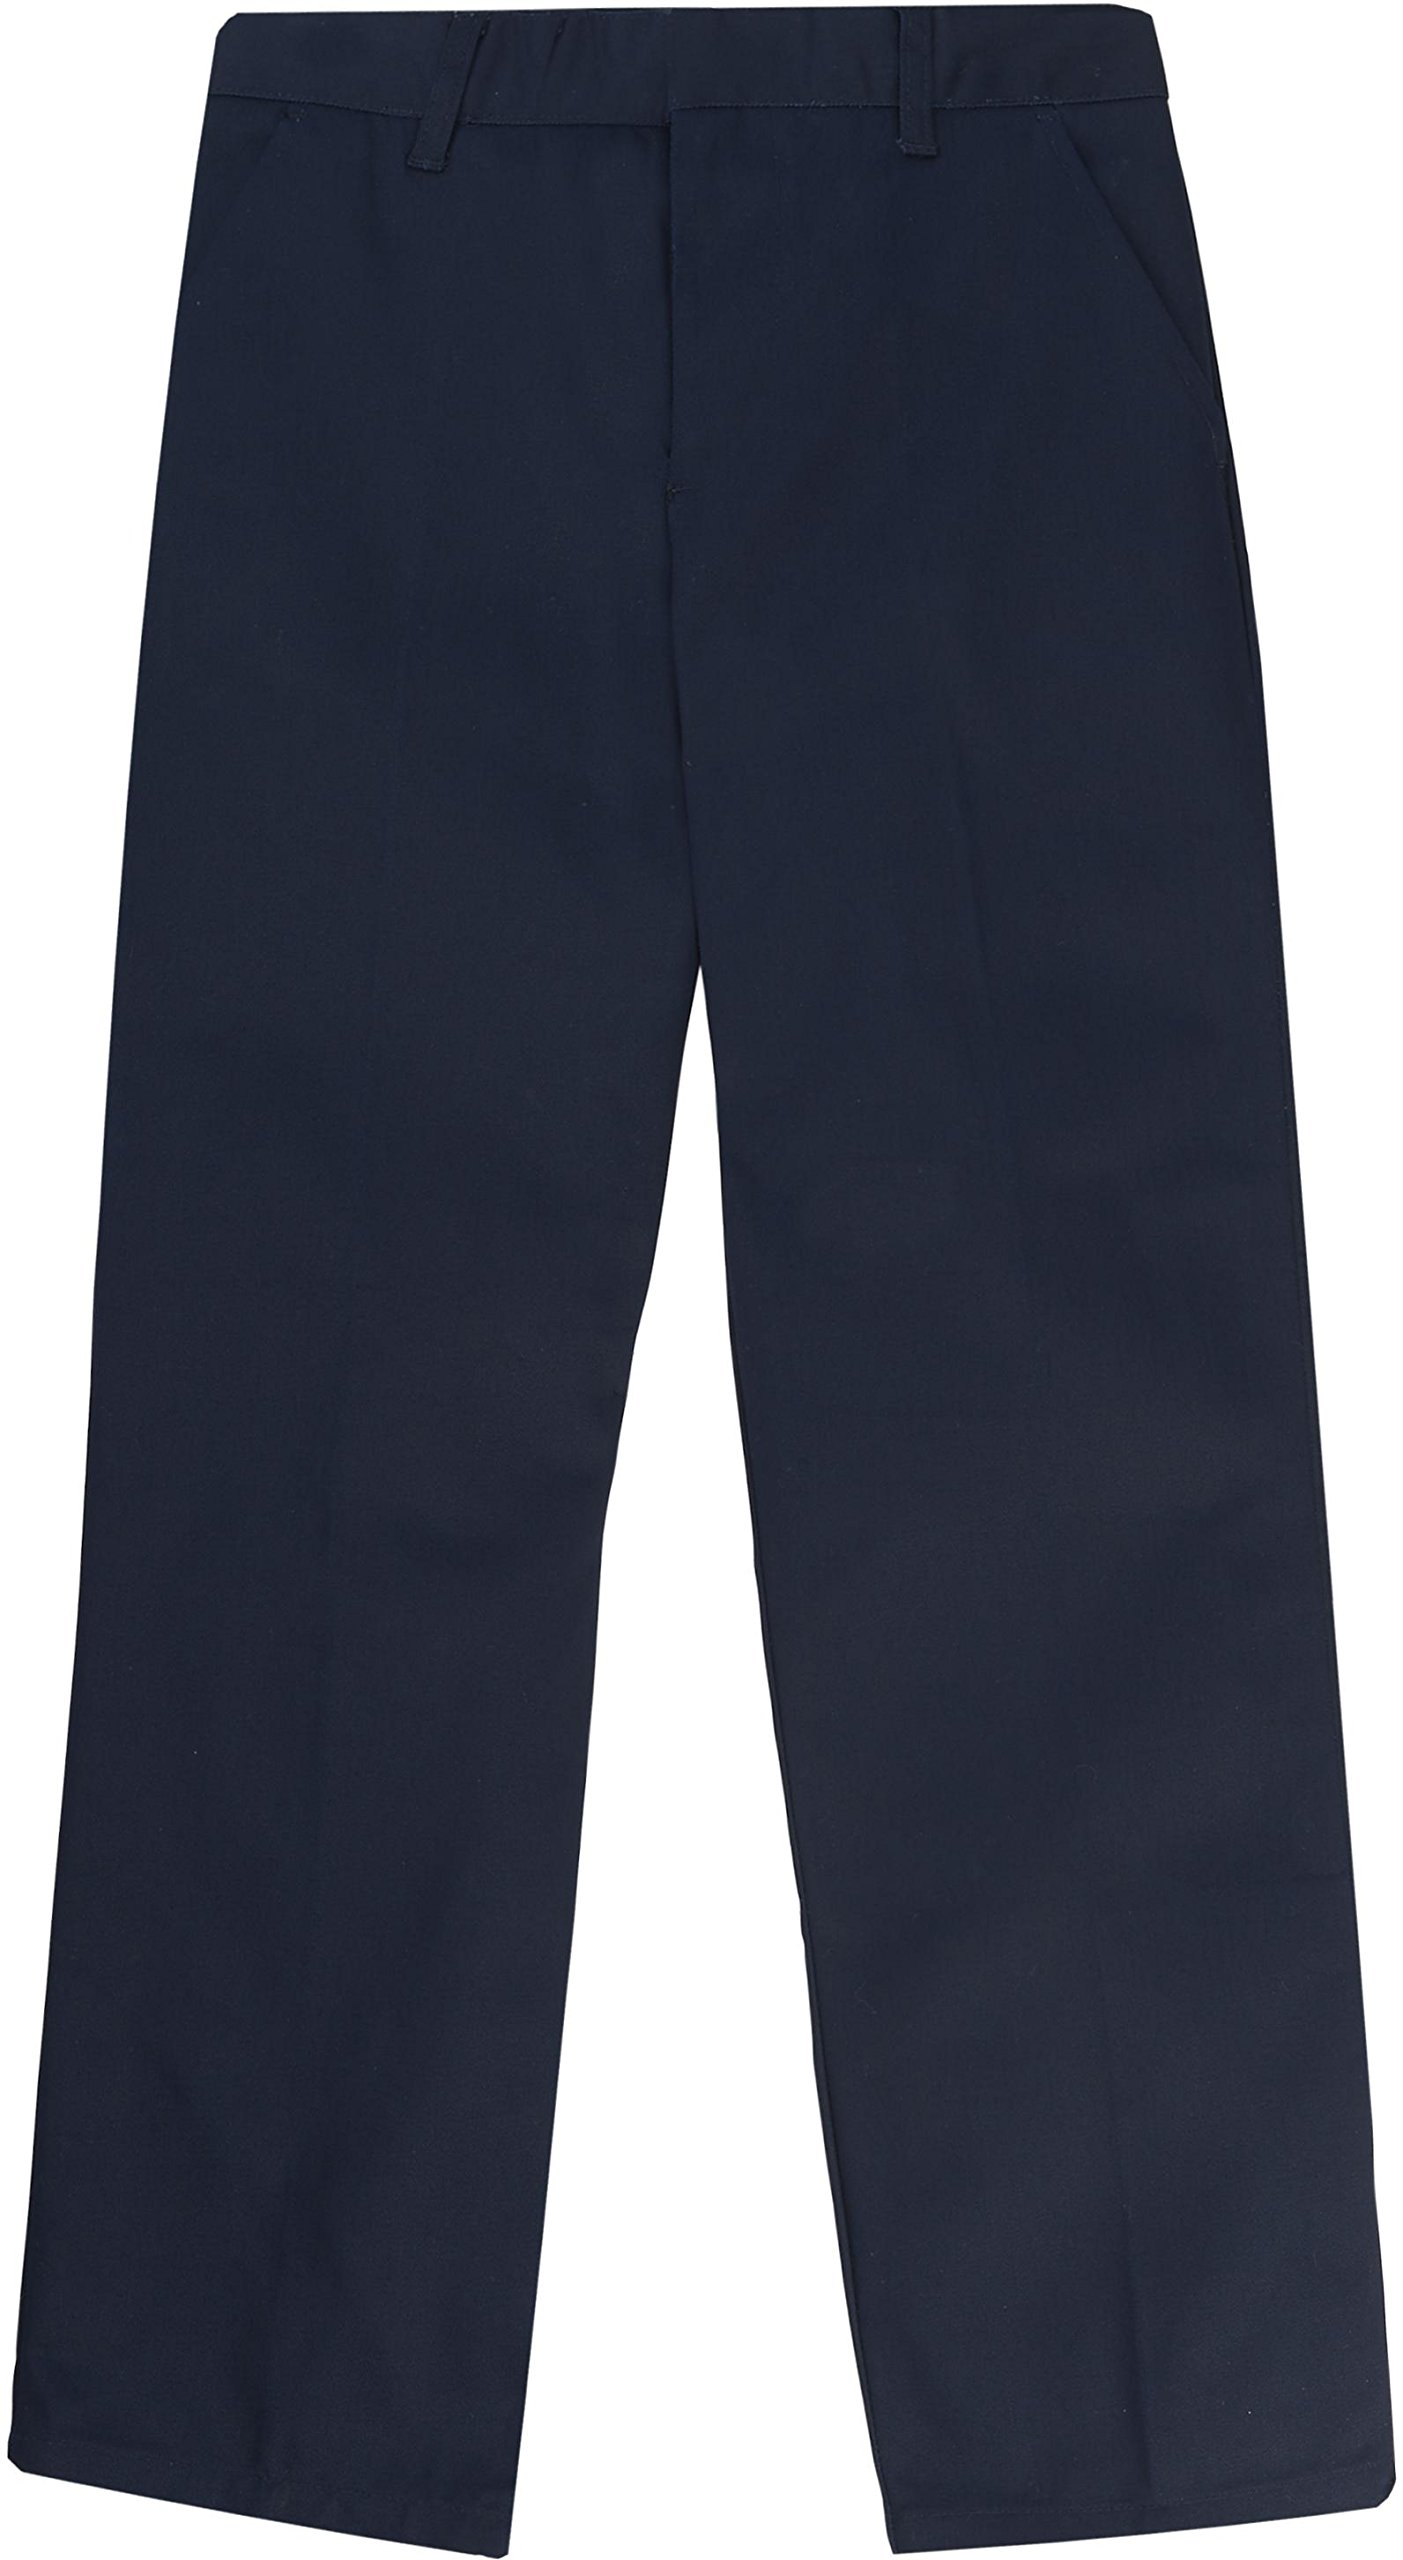 French Toast School Uniform Boys Adjustable Waist Flat Front Workwear Finish Double Knee Pants, Navy, 7 Slim by French Toast